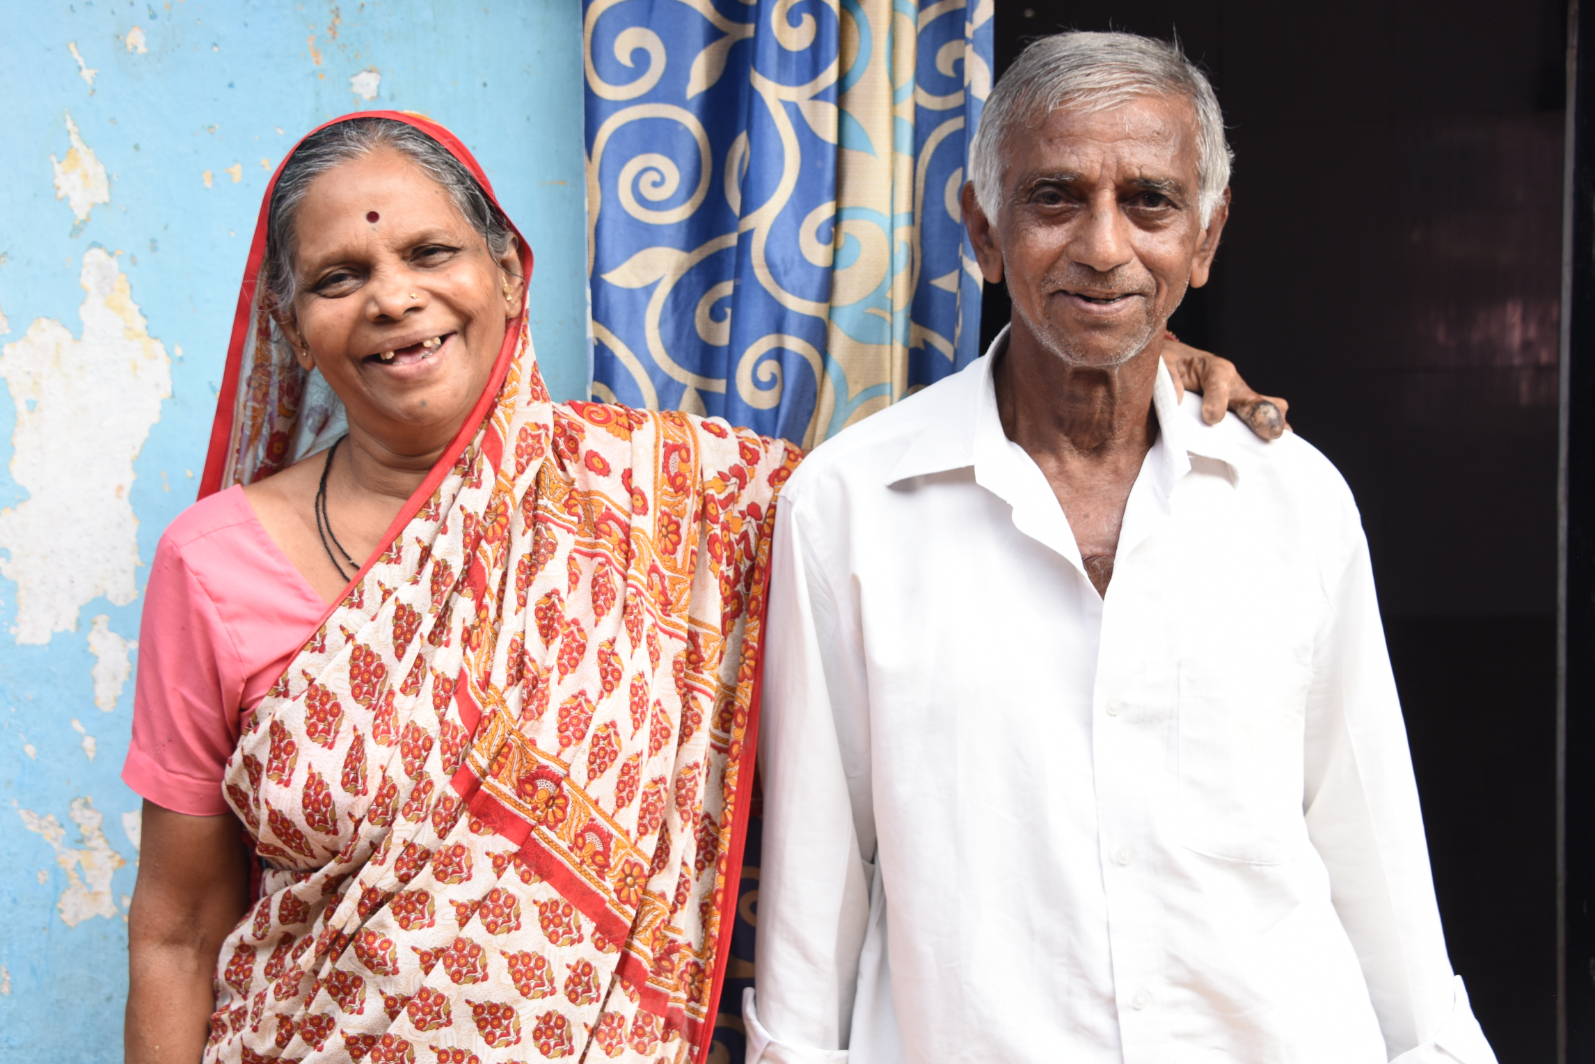 An elderly Indian couple smiling